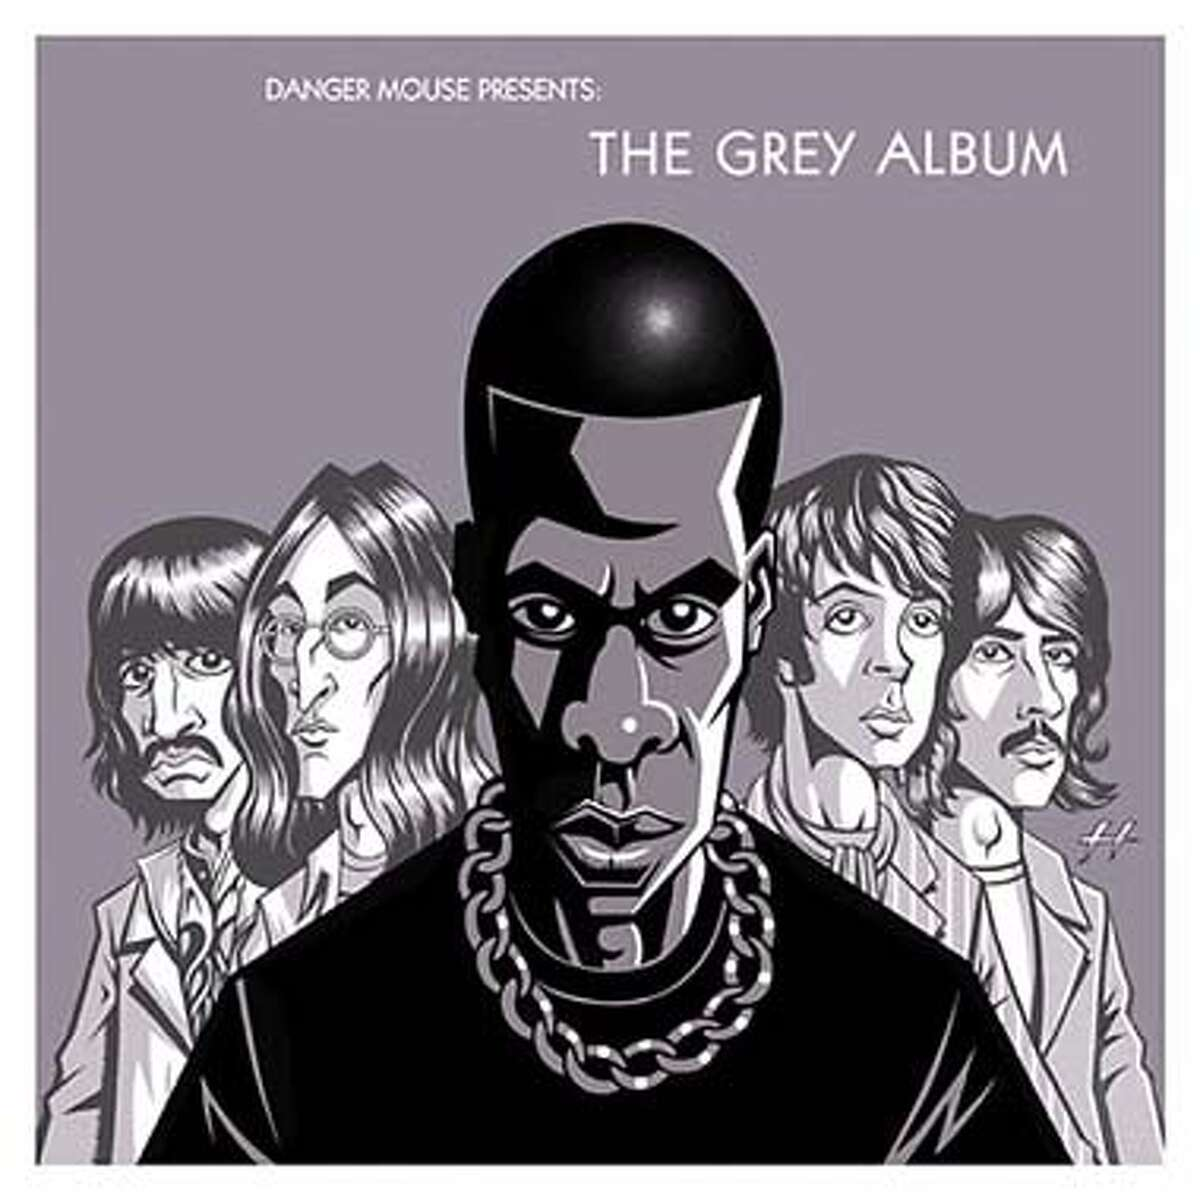 / for: Sunday Datebook Dj Danger mouse's The Grey Album